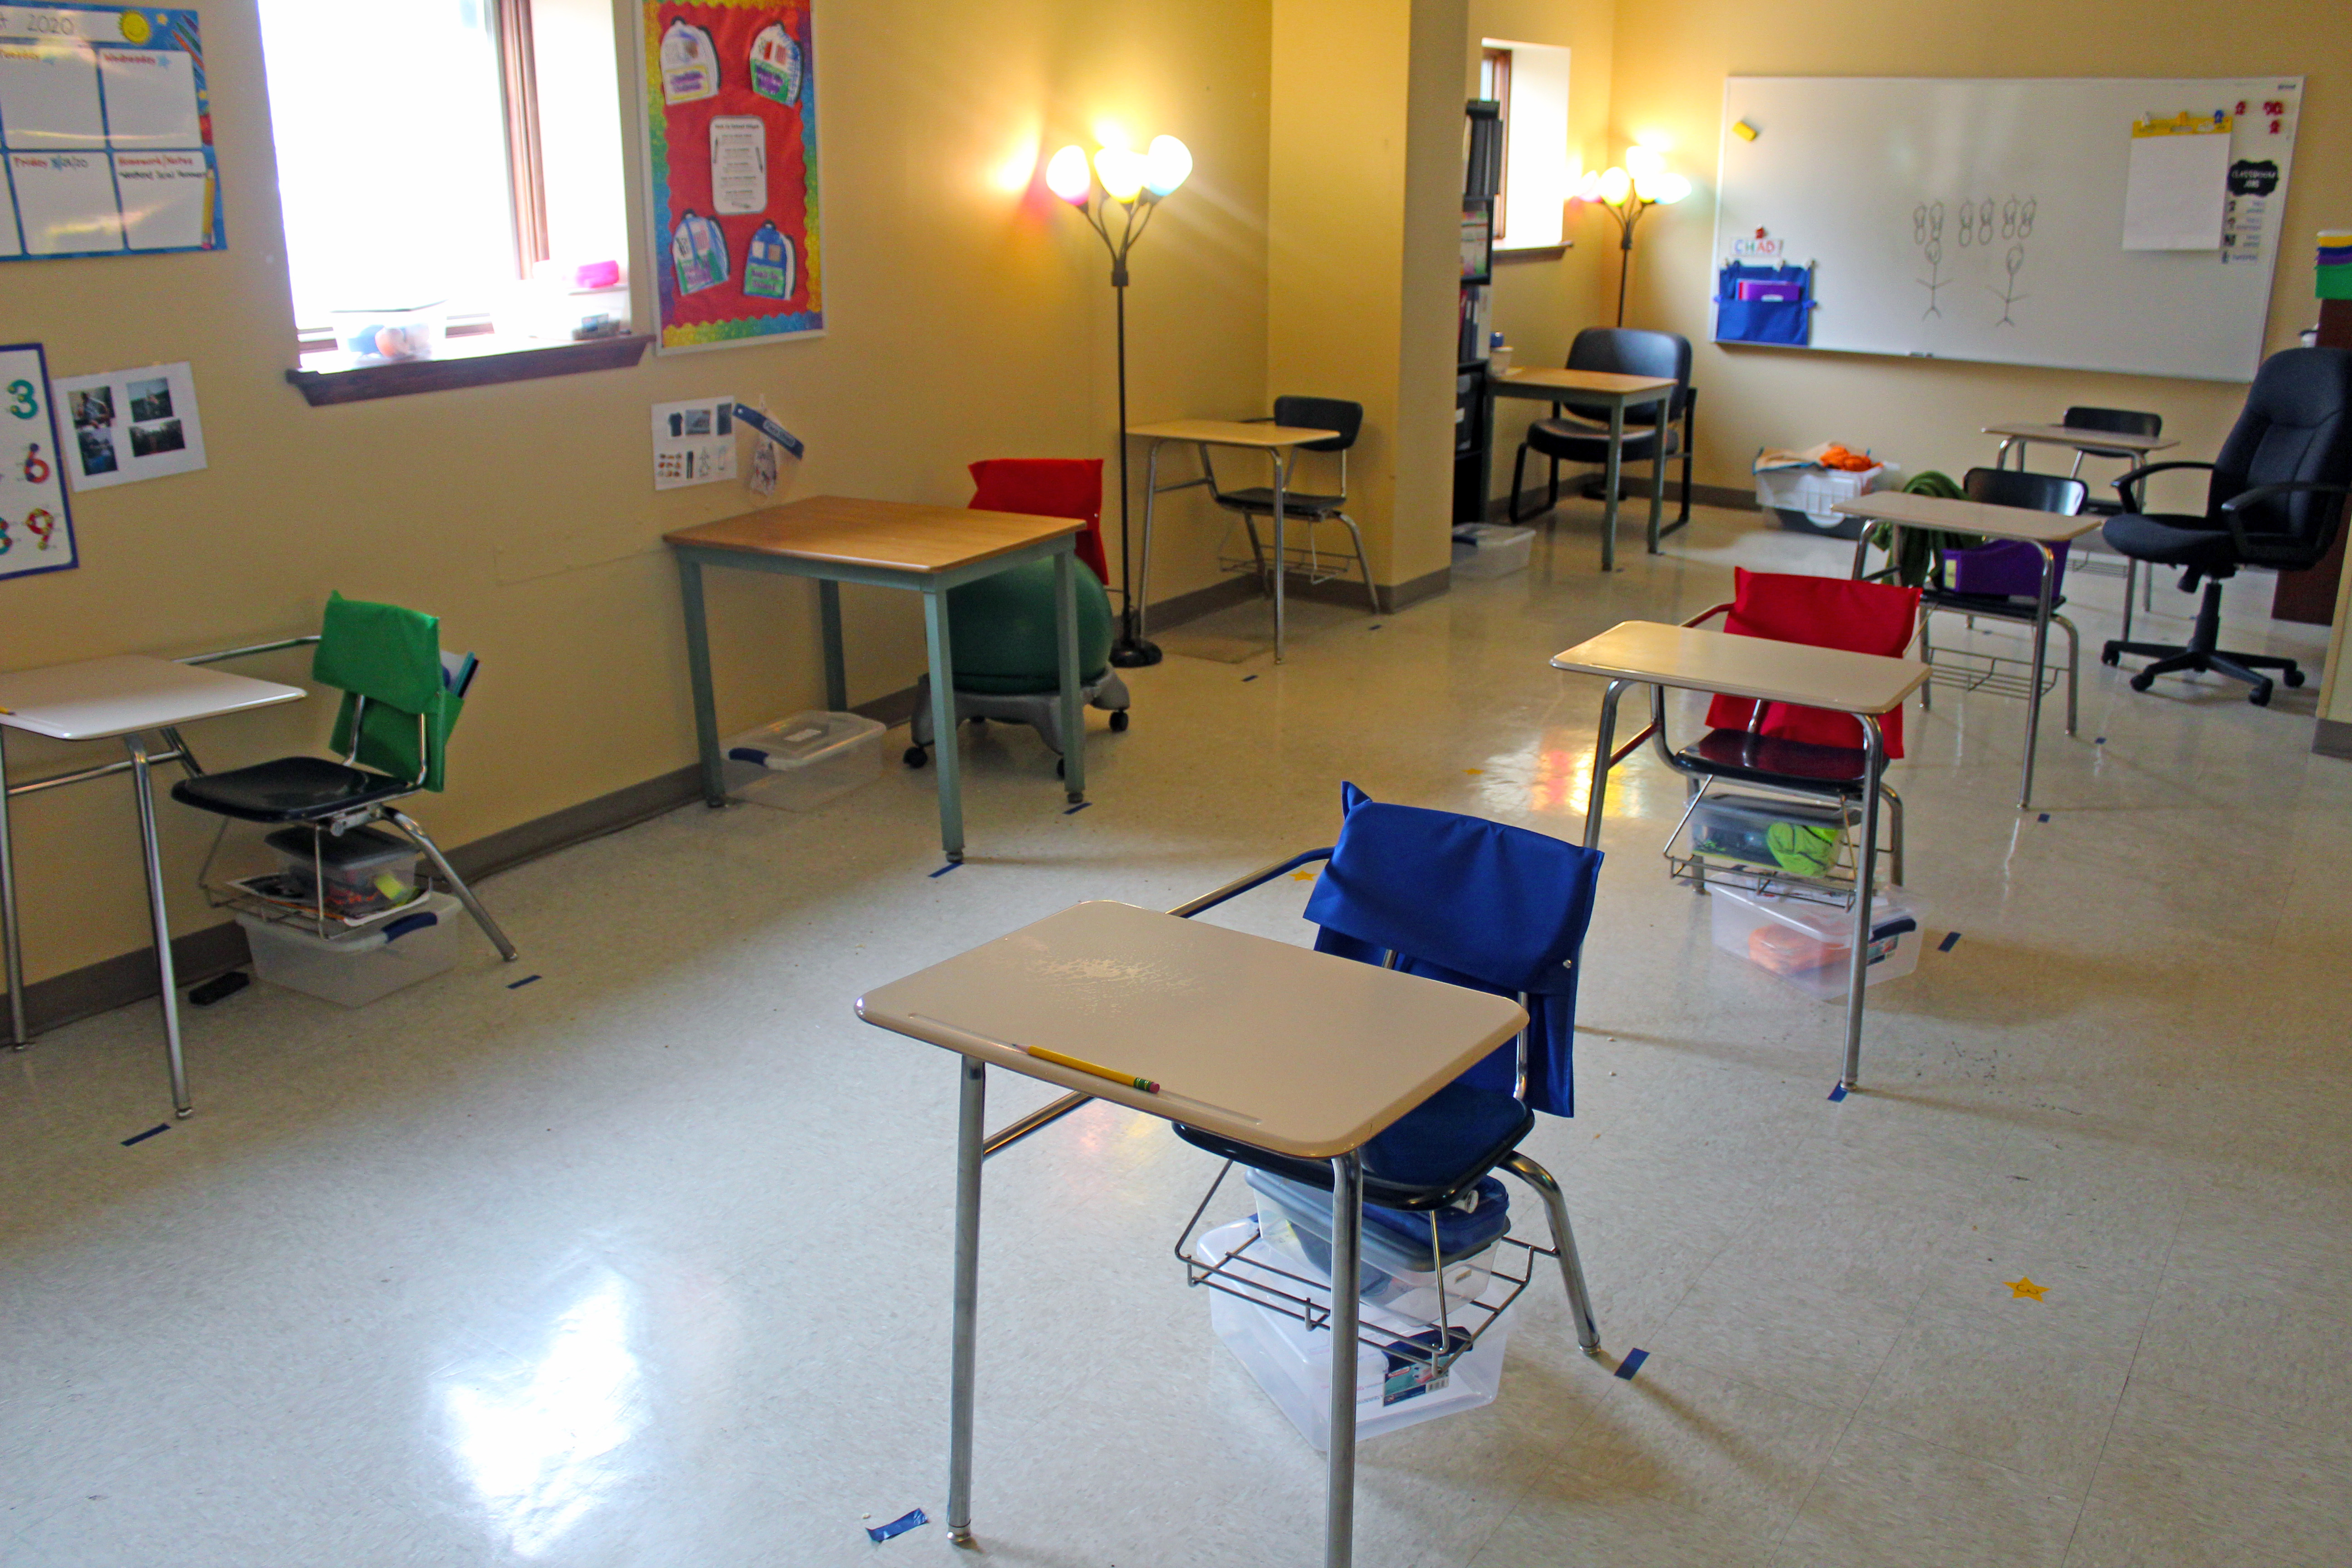 covid-safety-preparations-new-story-schools-indiana-4